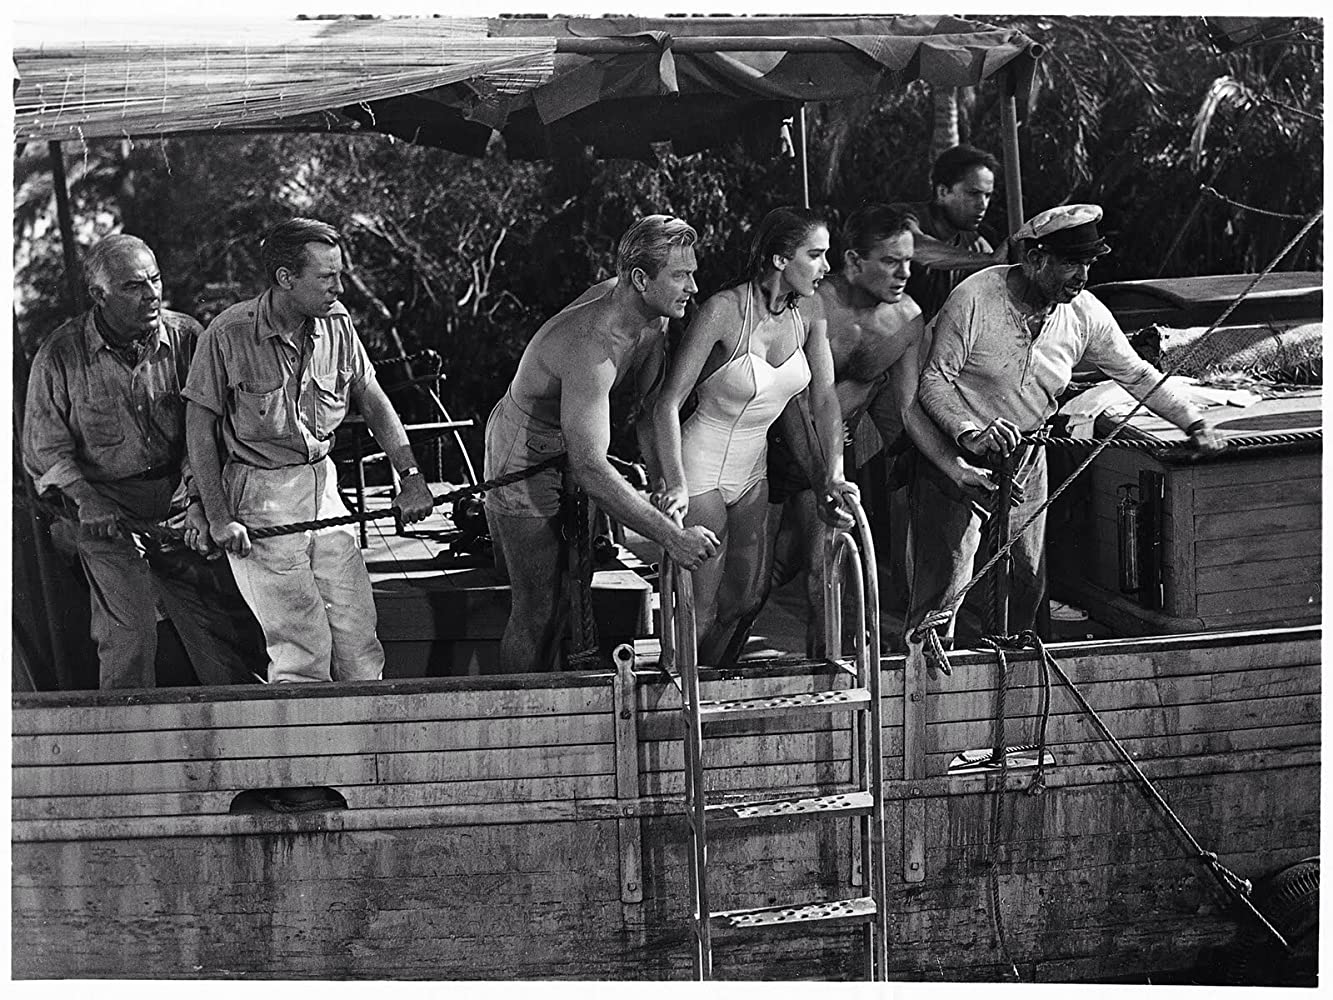 Julie Adams, Richard Carlson, Richard Denning, Antonio Moreno, and Nestor Paiva in Creature from the Black Lagoon (1954)